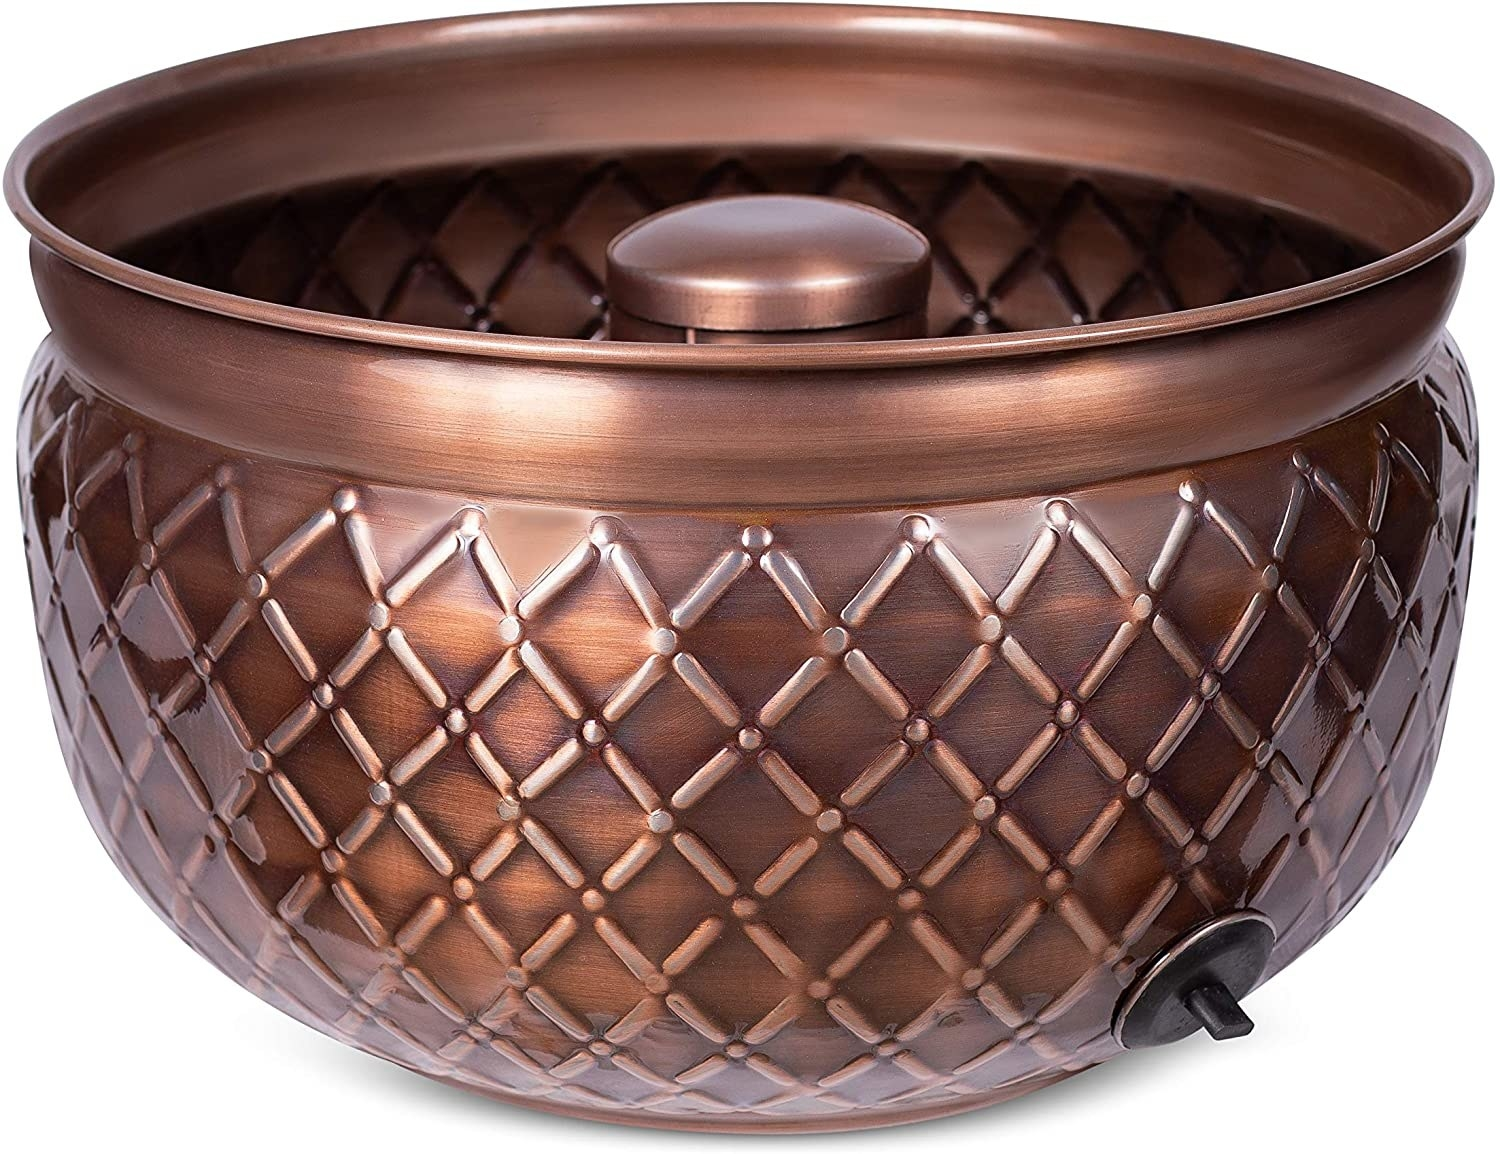 an embossed copper hose pot